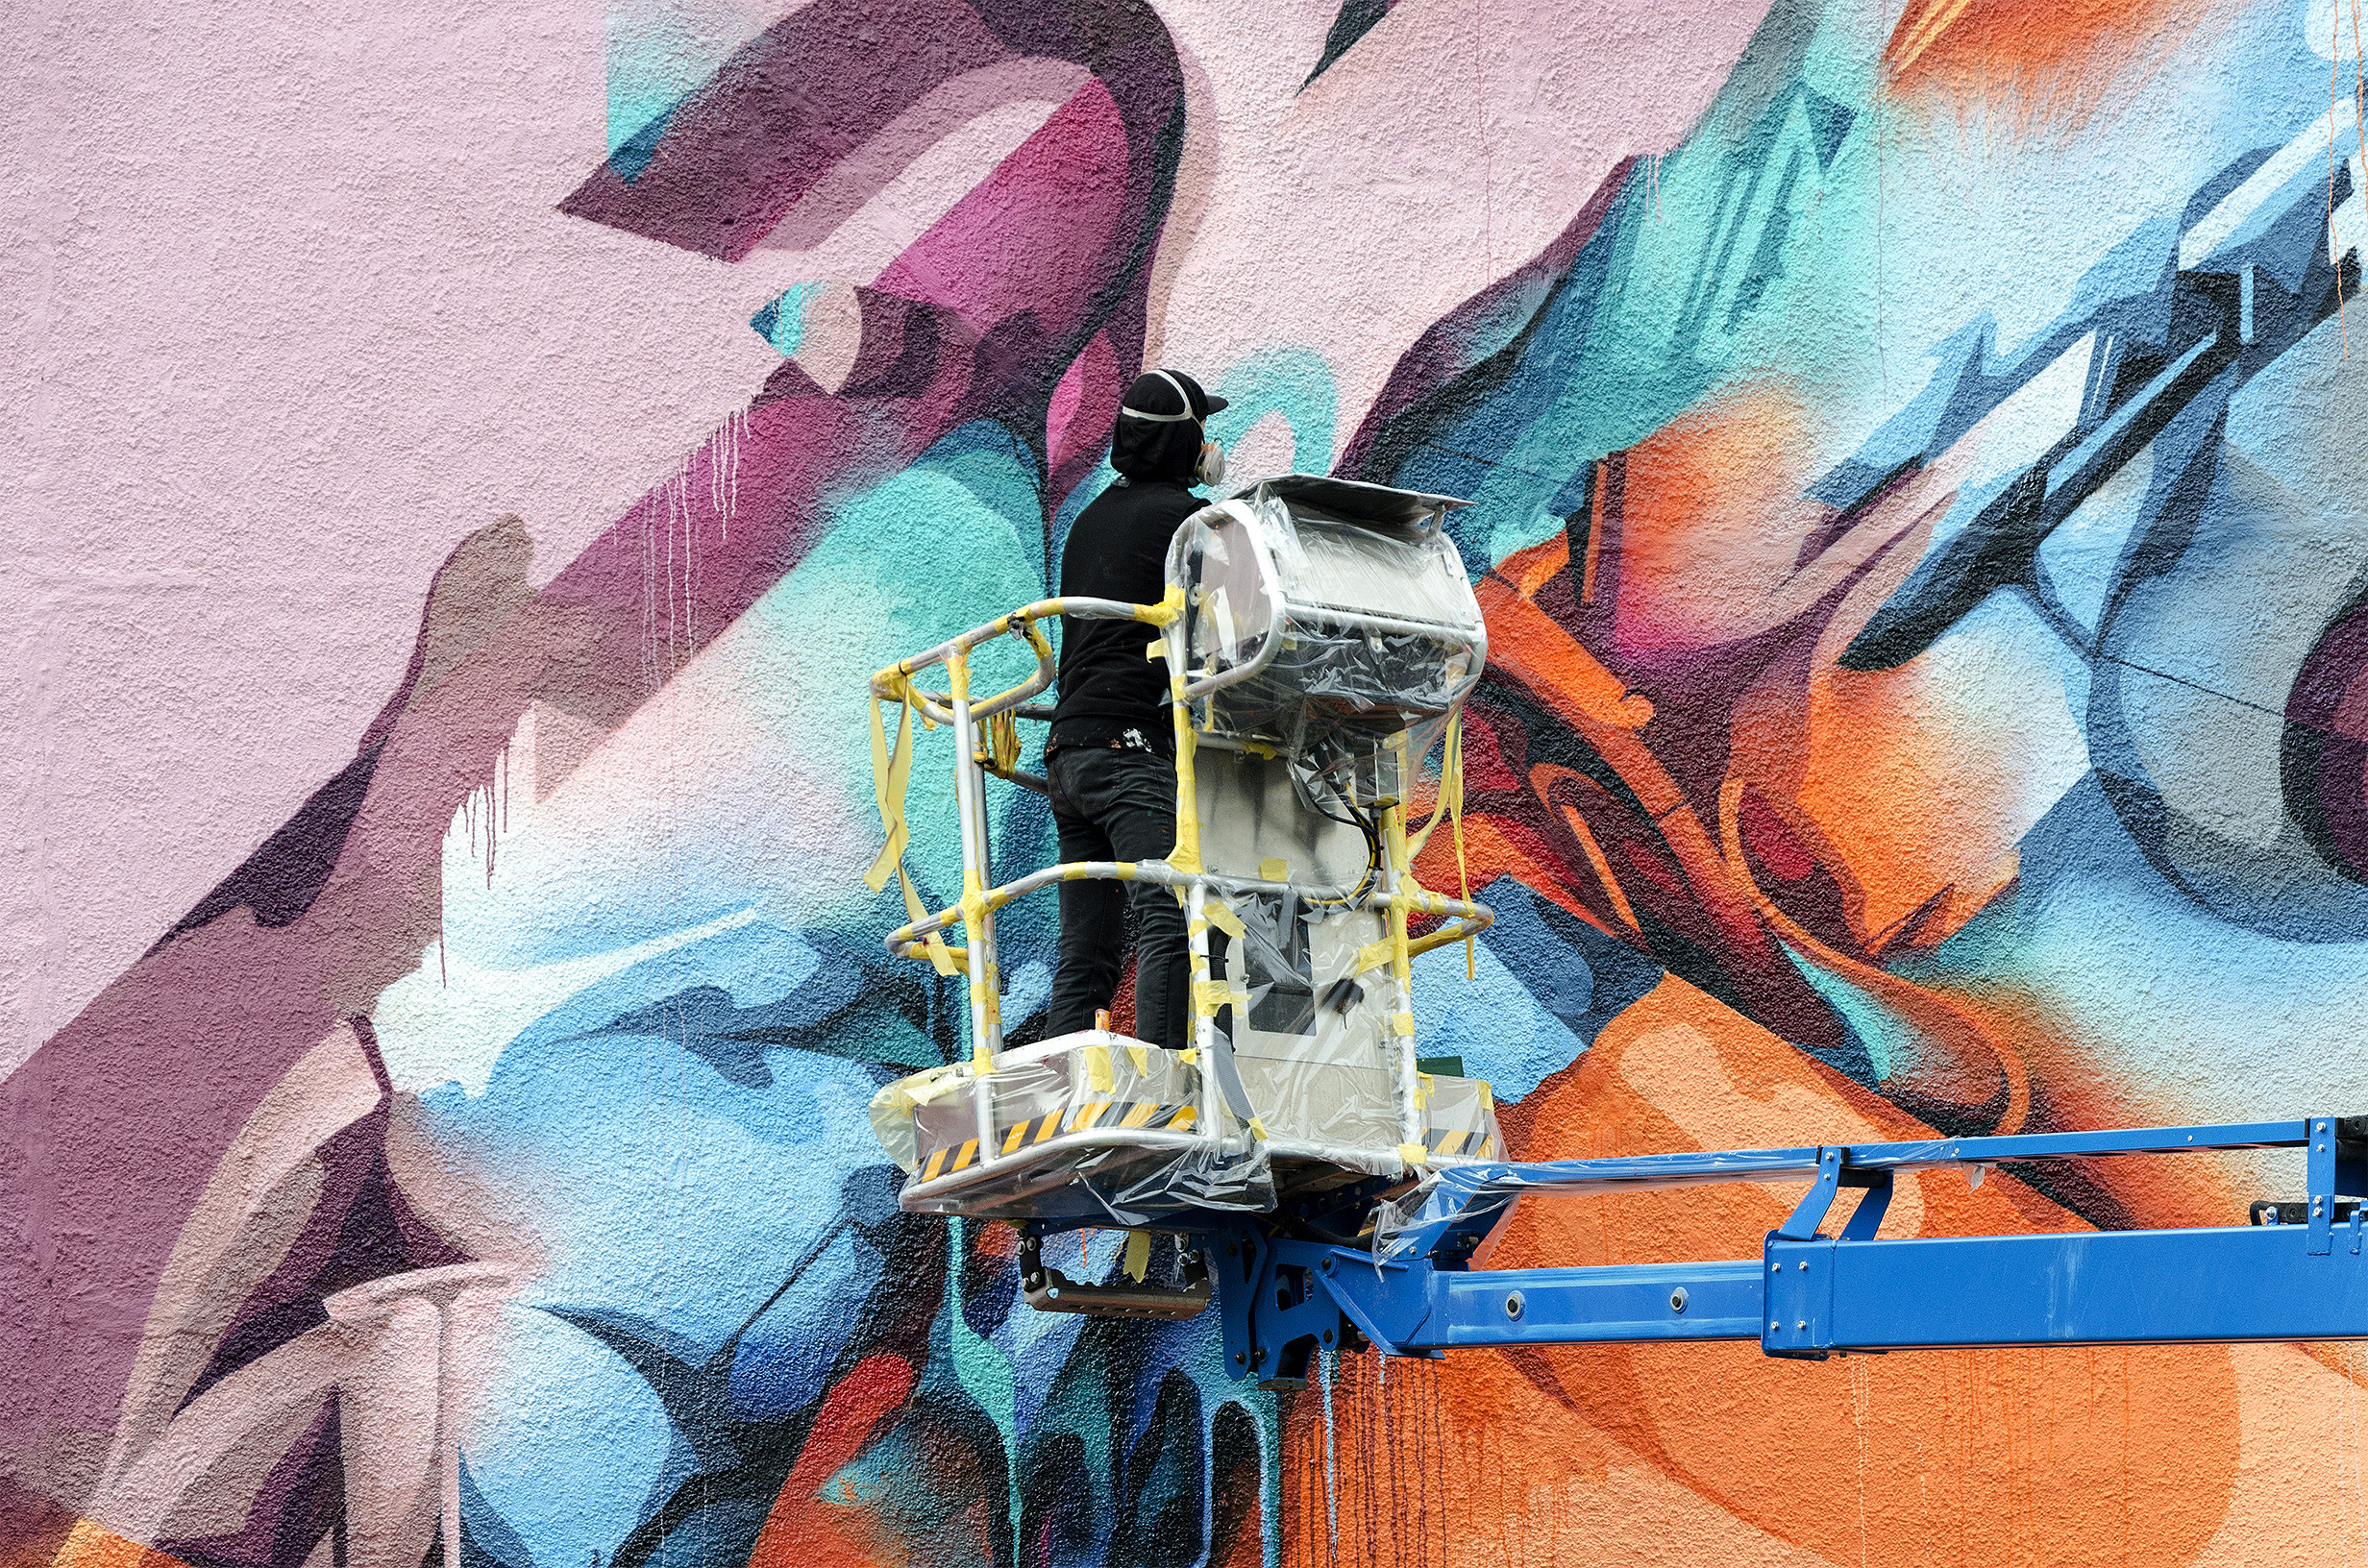 A work by Does - River tales giessen germany mural 2